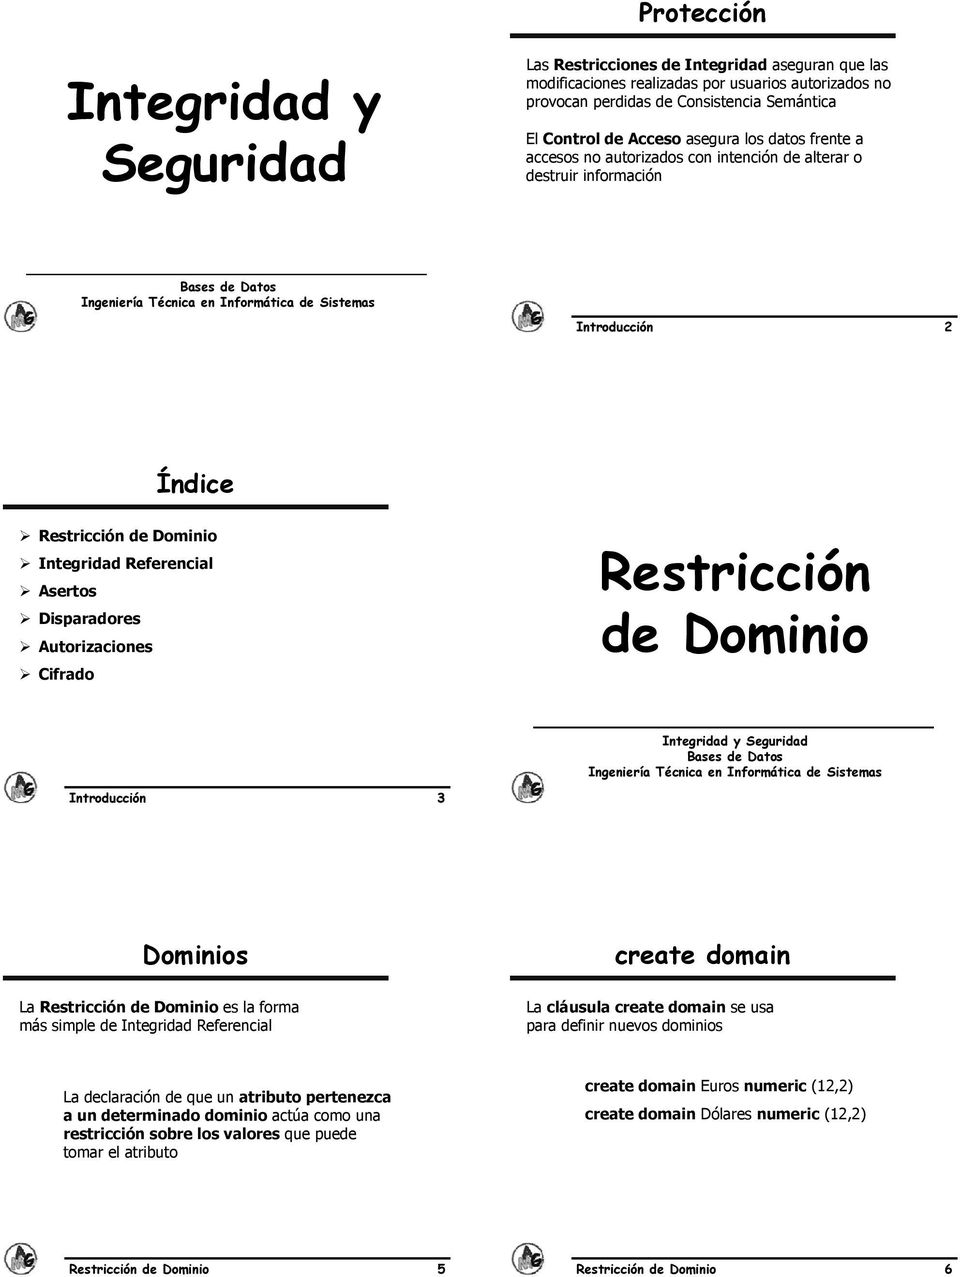 Autorizaciones Cifrado Restricción de Dominio Introducción 3 Dominios La Restricción de Dominio es la forma más simple de Integridad Referencial create domain La cláusula create domain se usa para